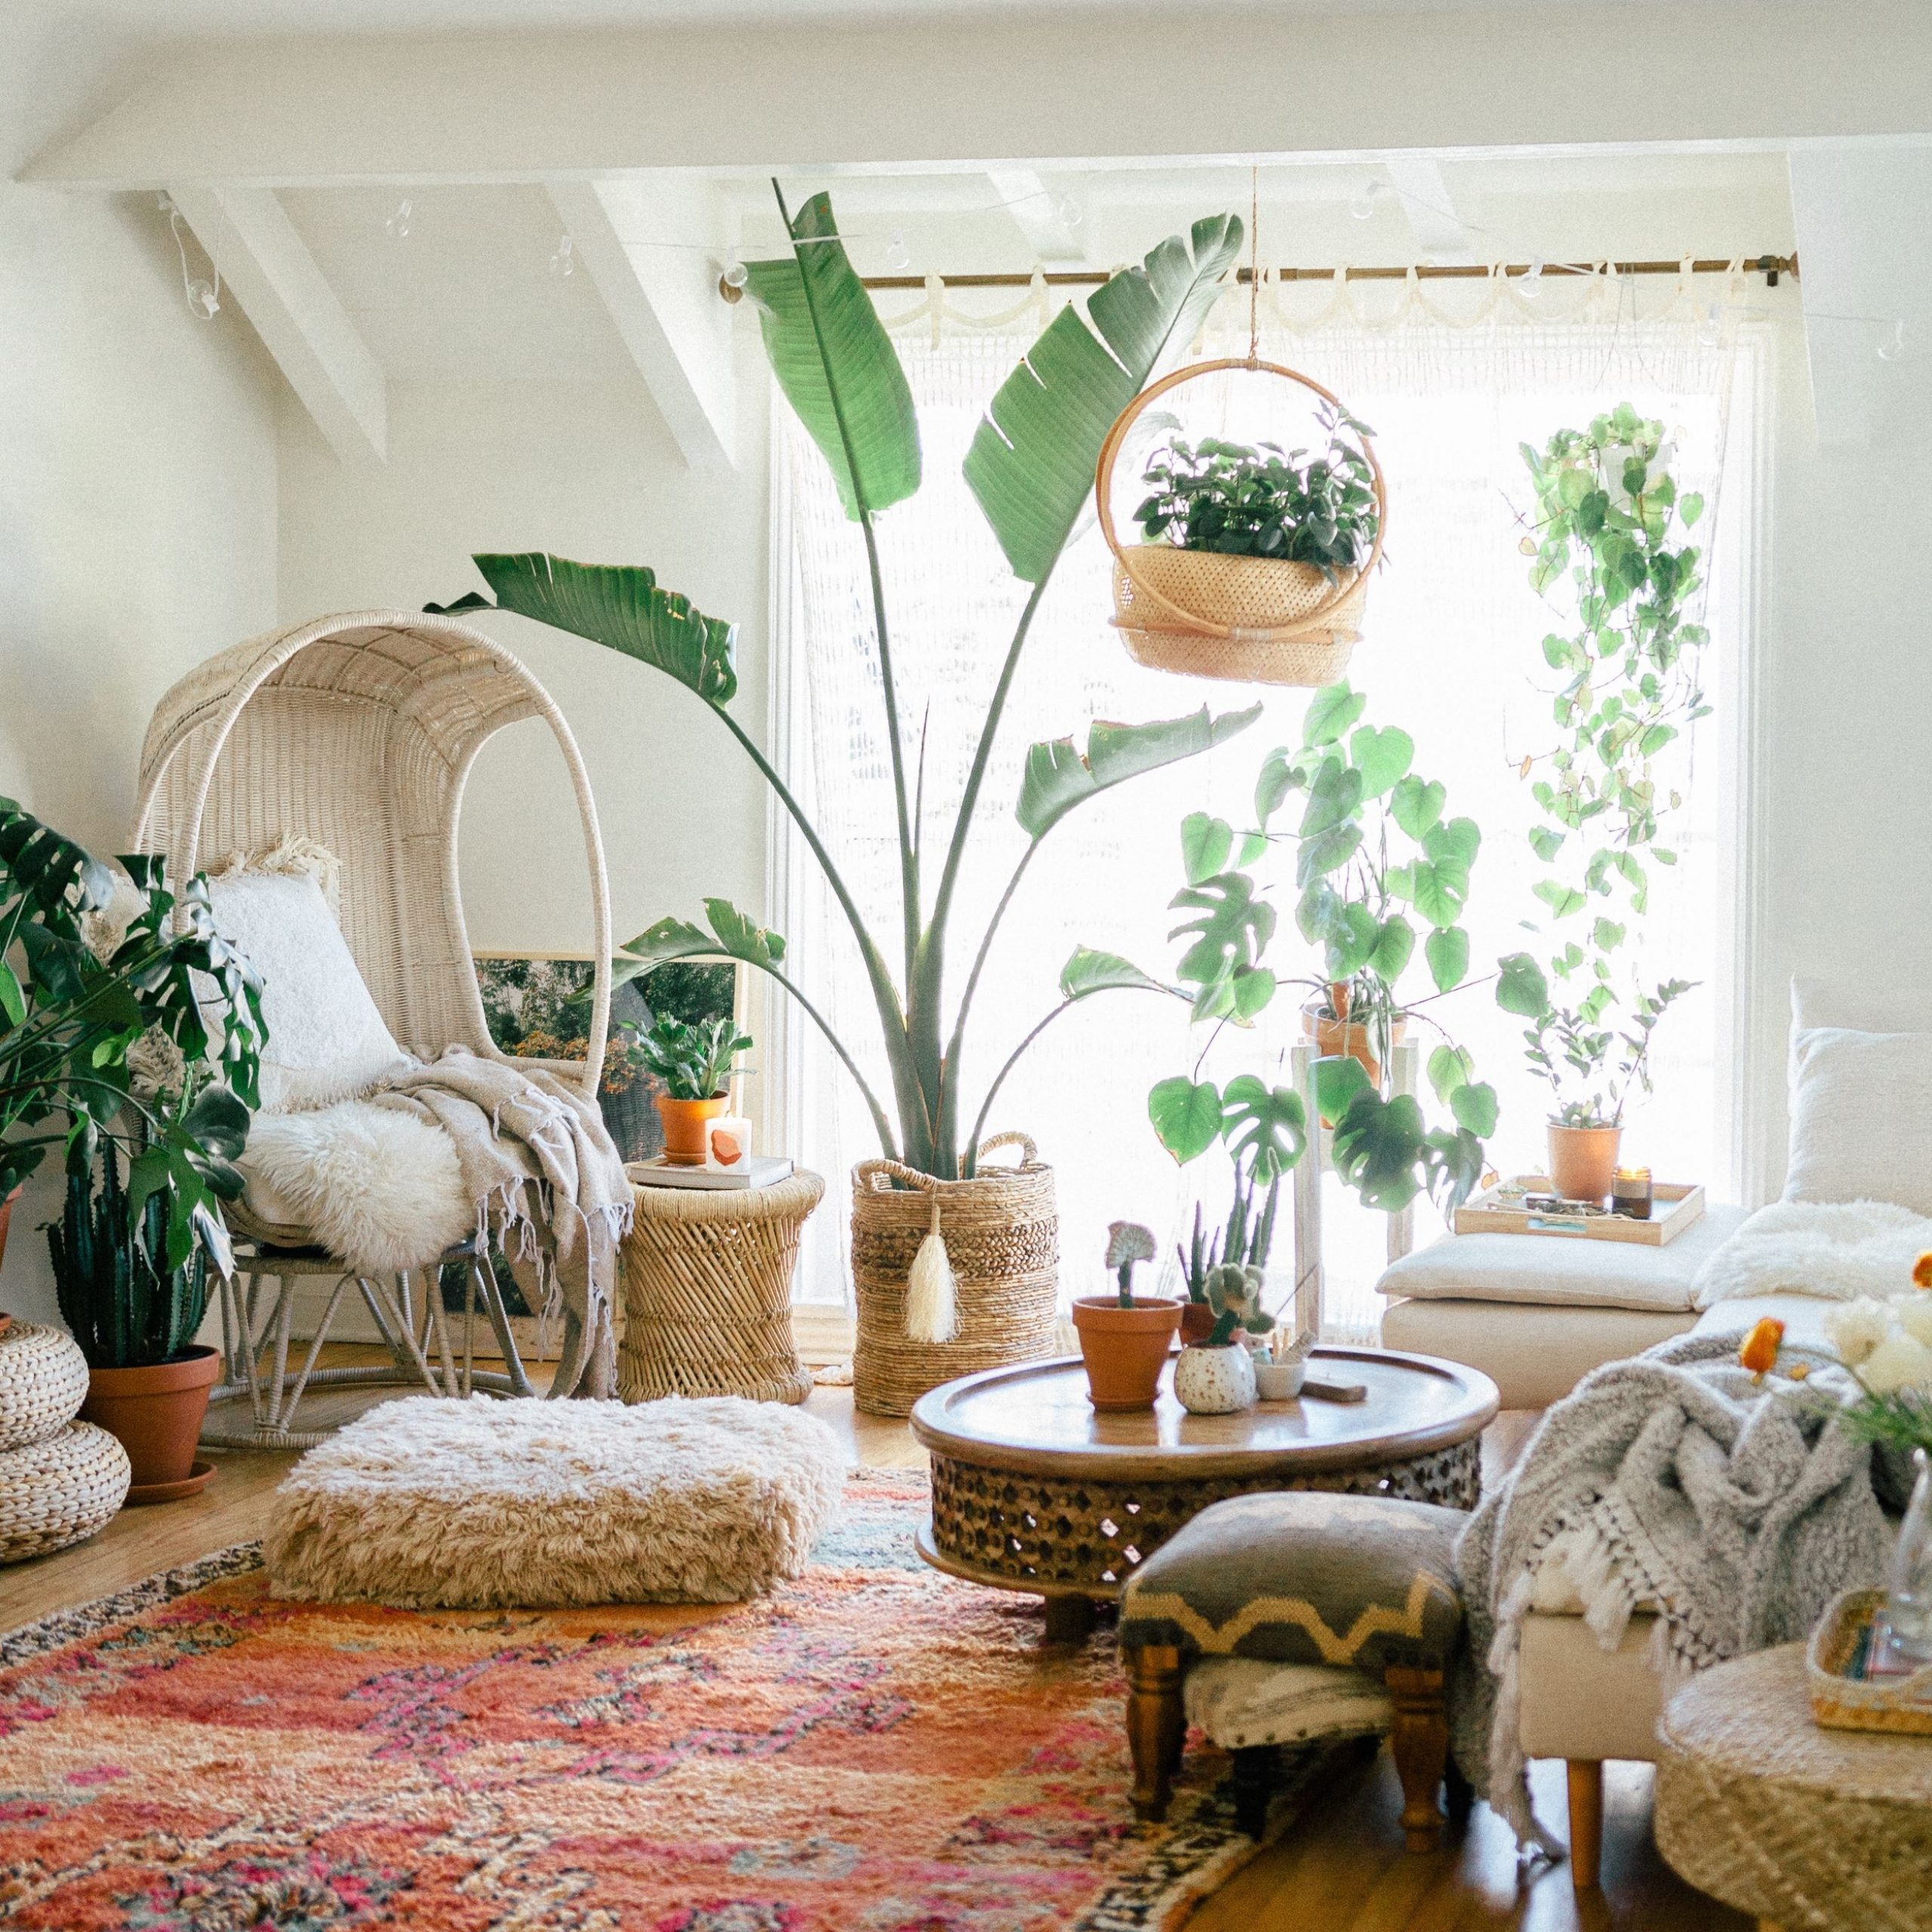 Stupendous Boho Living Room Decor On A Budget Ideas Spaces Living Room Chairs On Decorative 10 Boho Chic Living Room Decorating Ideas You Ll Want to On Boho Living Room Decor On A Budget Ideas Spaces Living Room Chairs